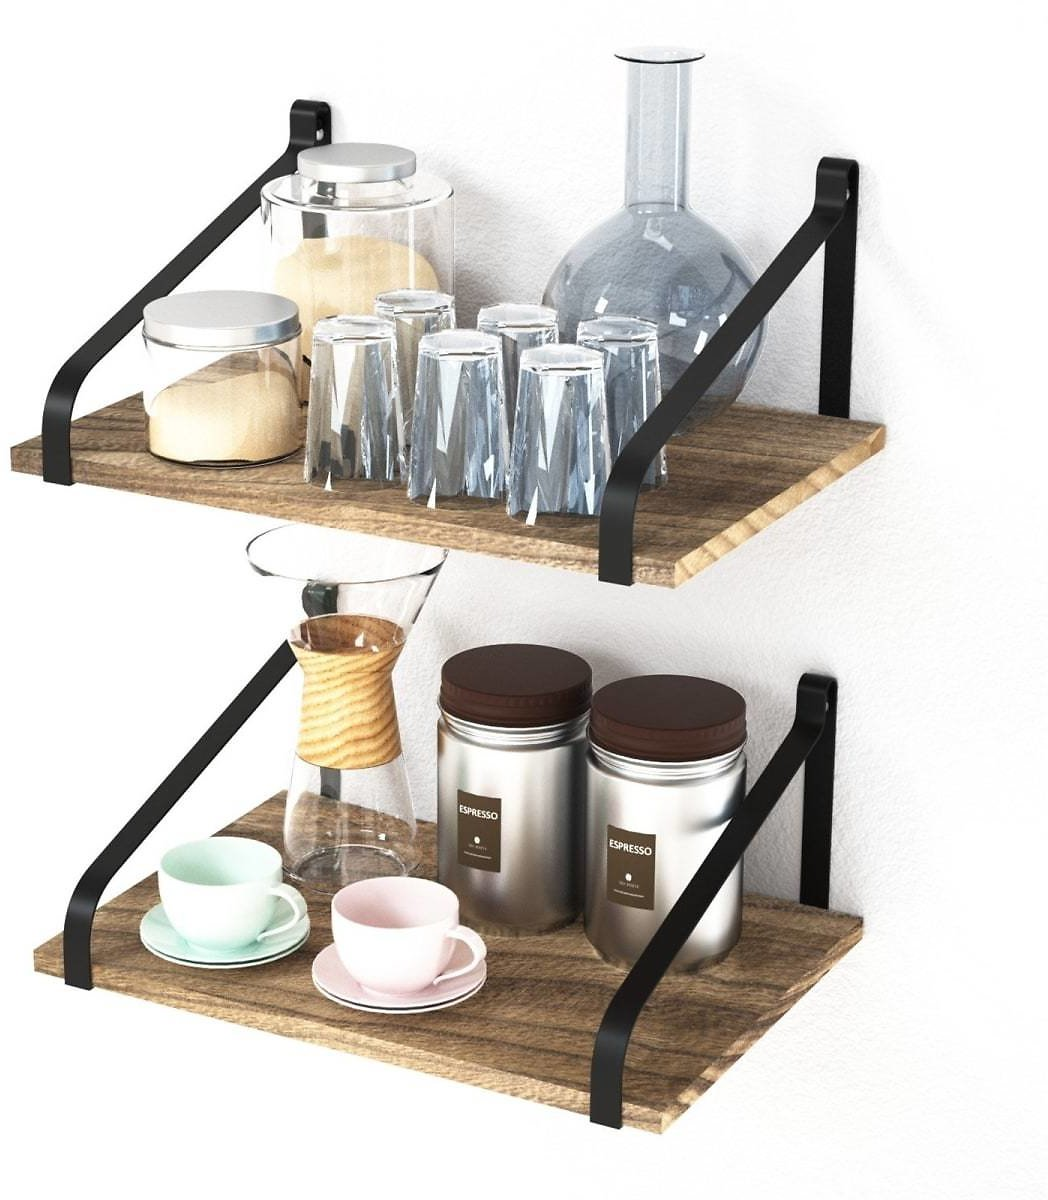 Floating Rustic Wall Shelves | Set Of 2